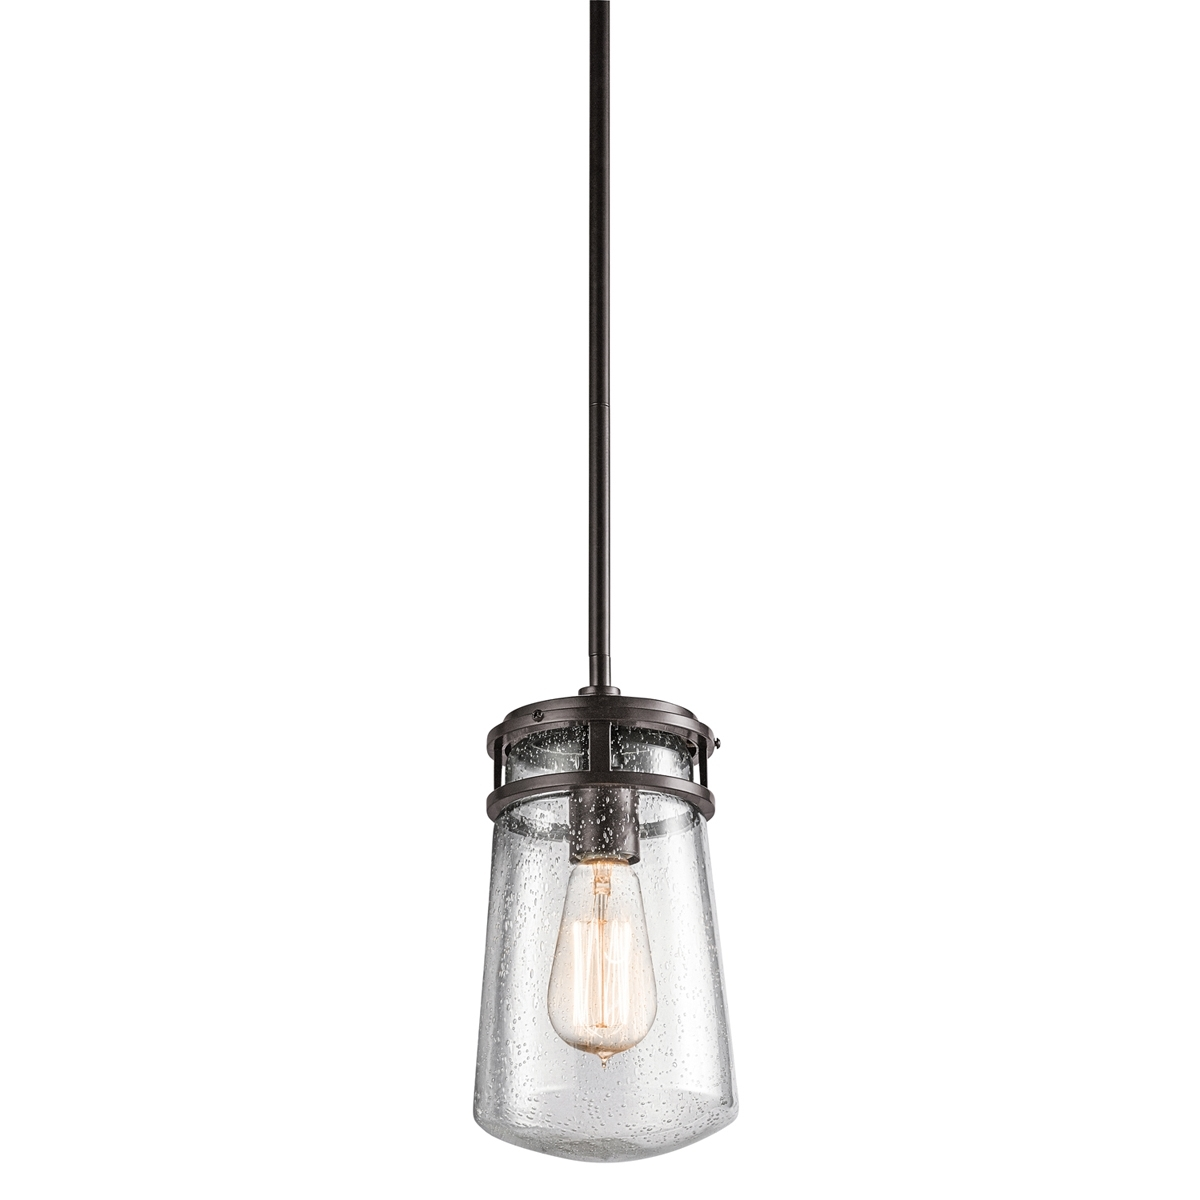 Nautical, Outdoor Hanging Lights, Outdoor Lights – Lamps Expo In Outdoor Hanging Lamps (View 3 of 15)